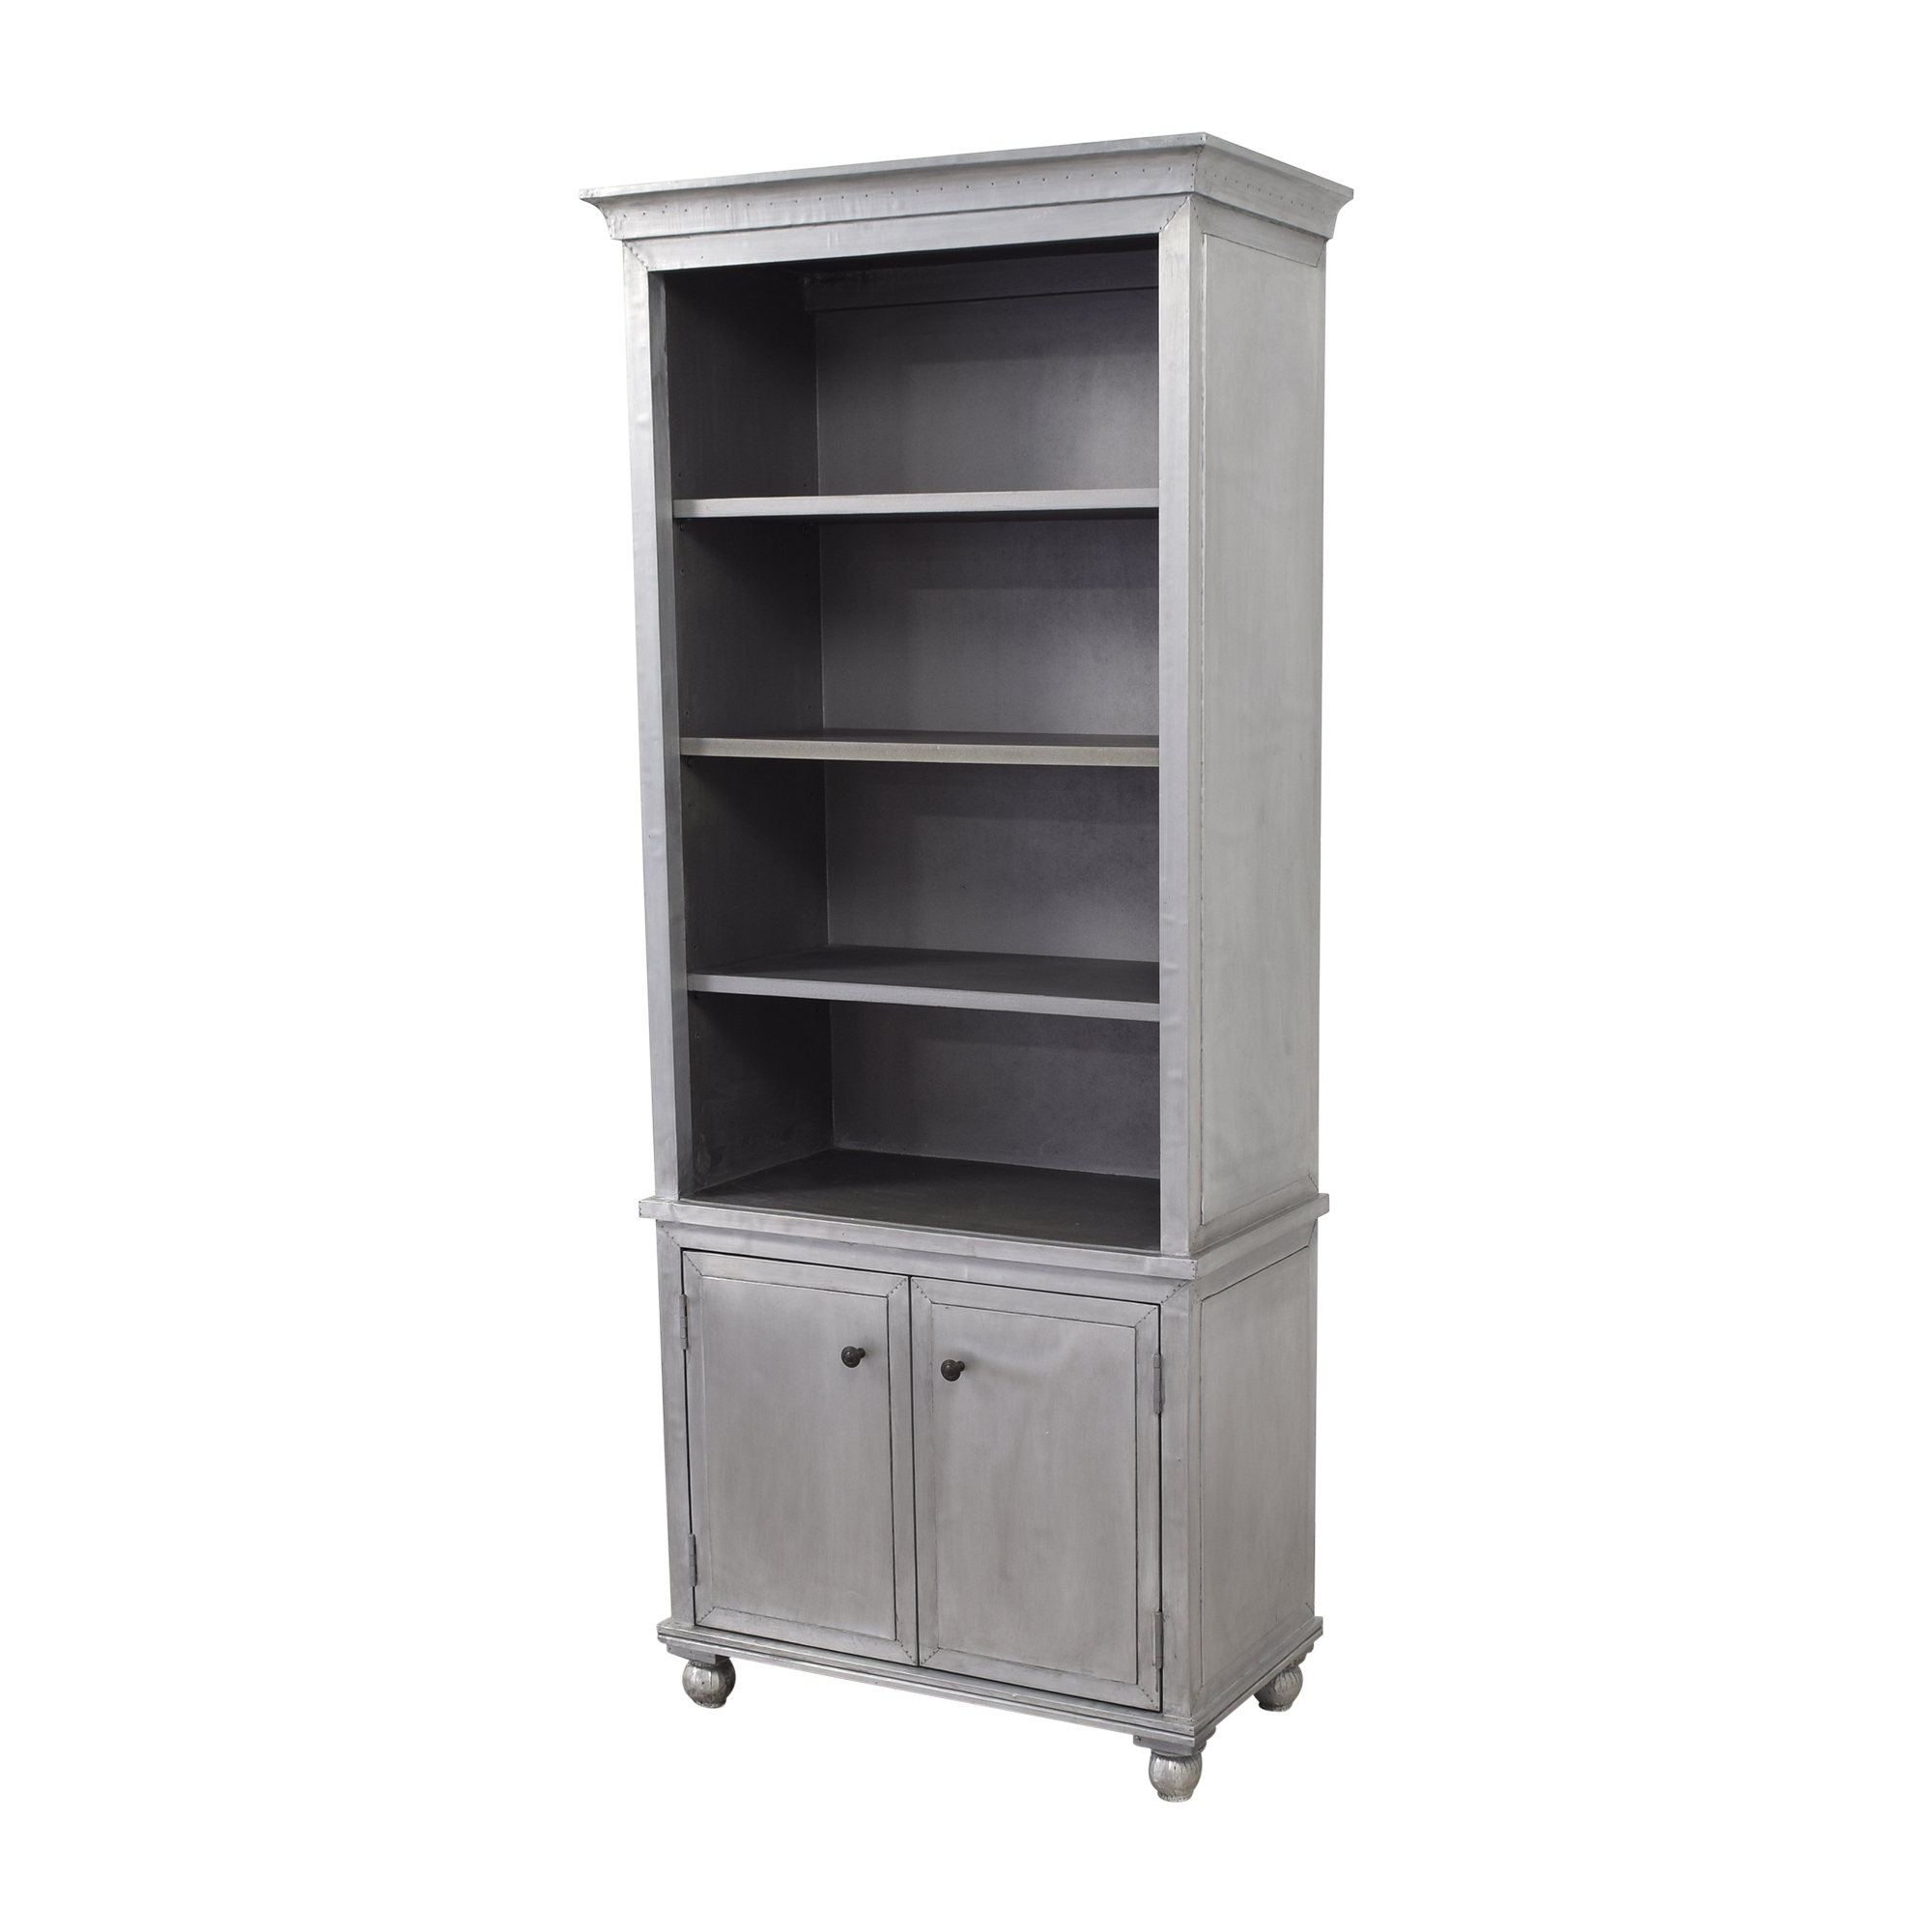 Restoration Hardware Restoration Hardware Annecy Sideboard with Open Hutch for sale